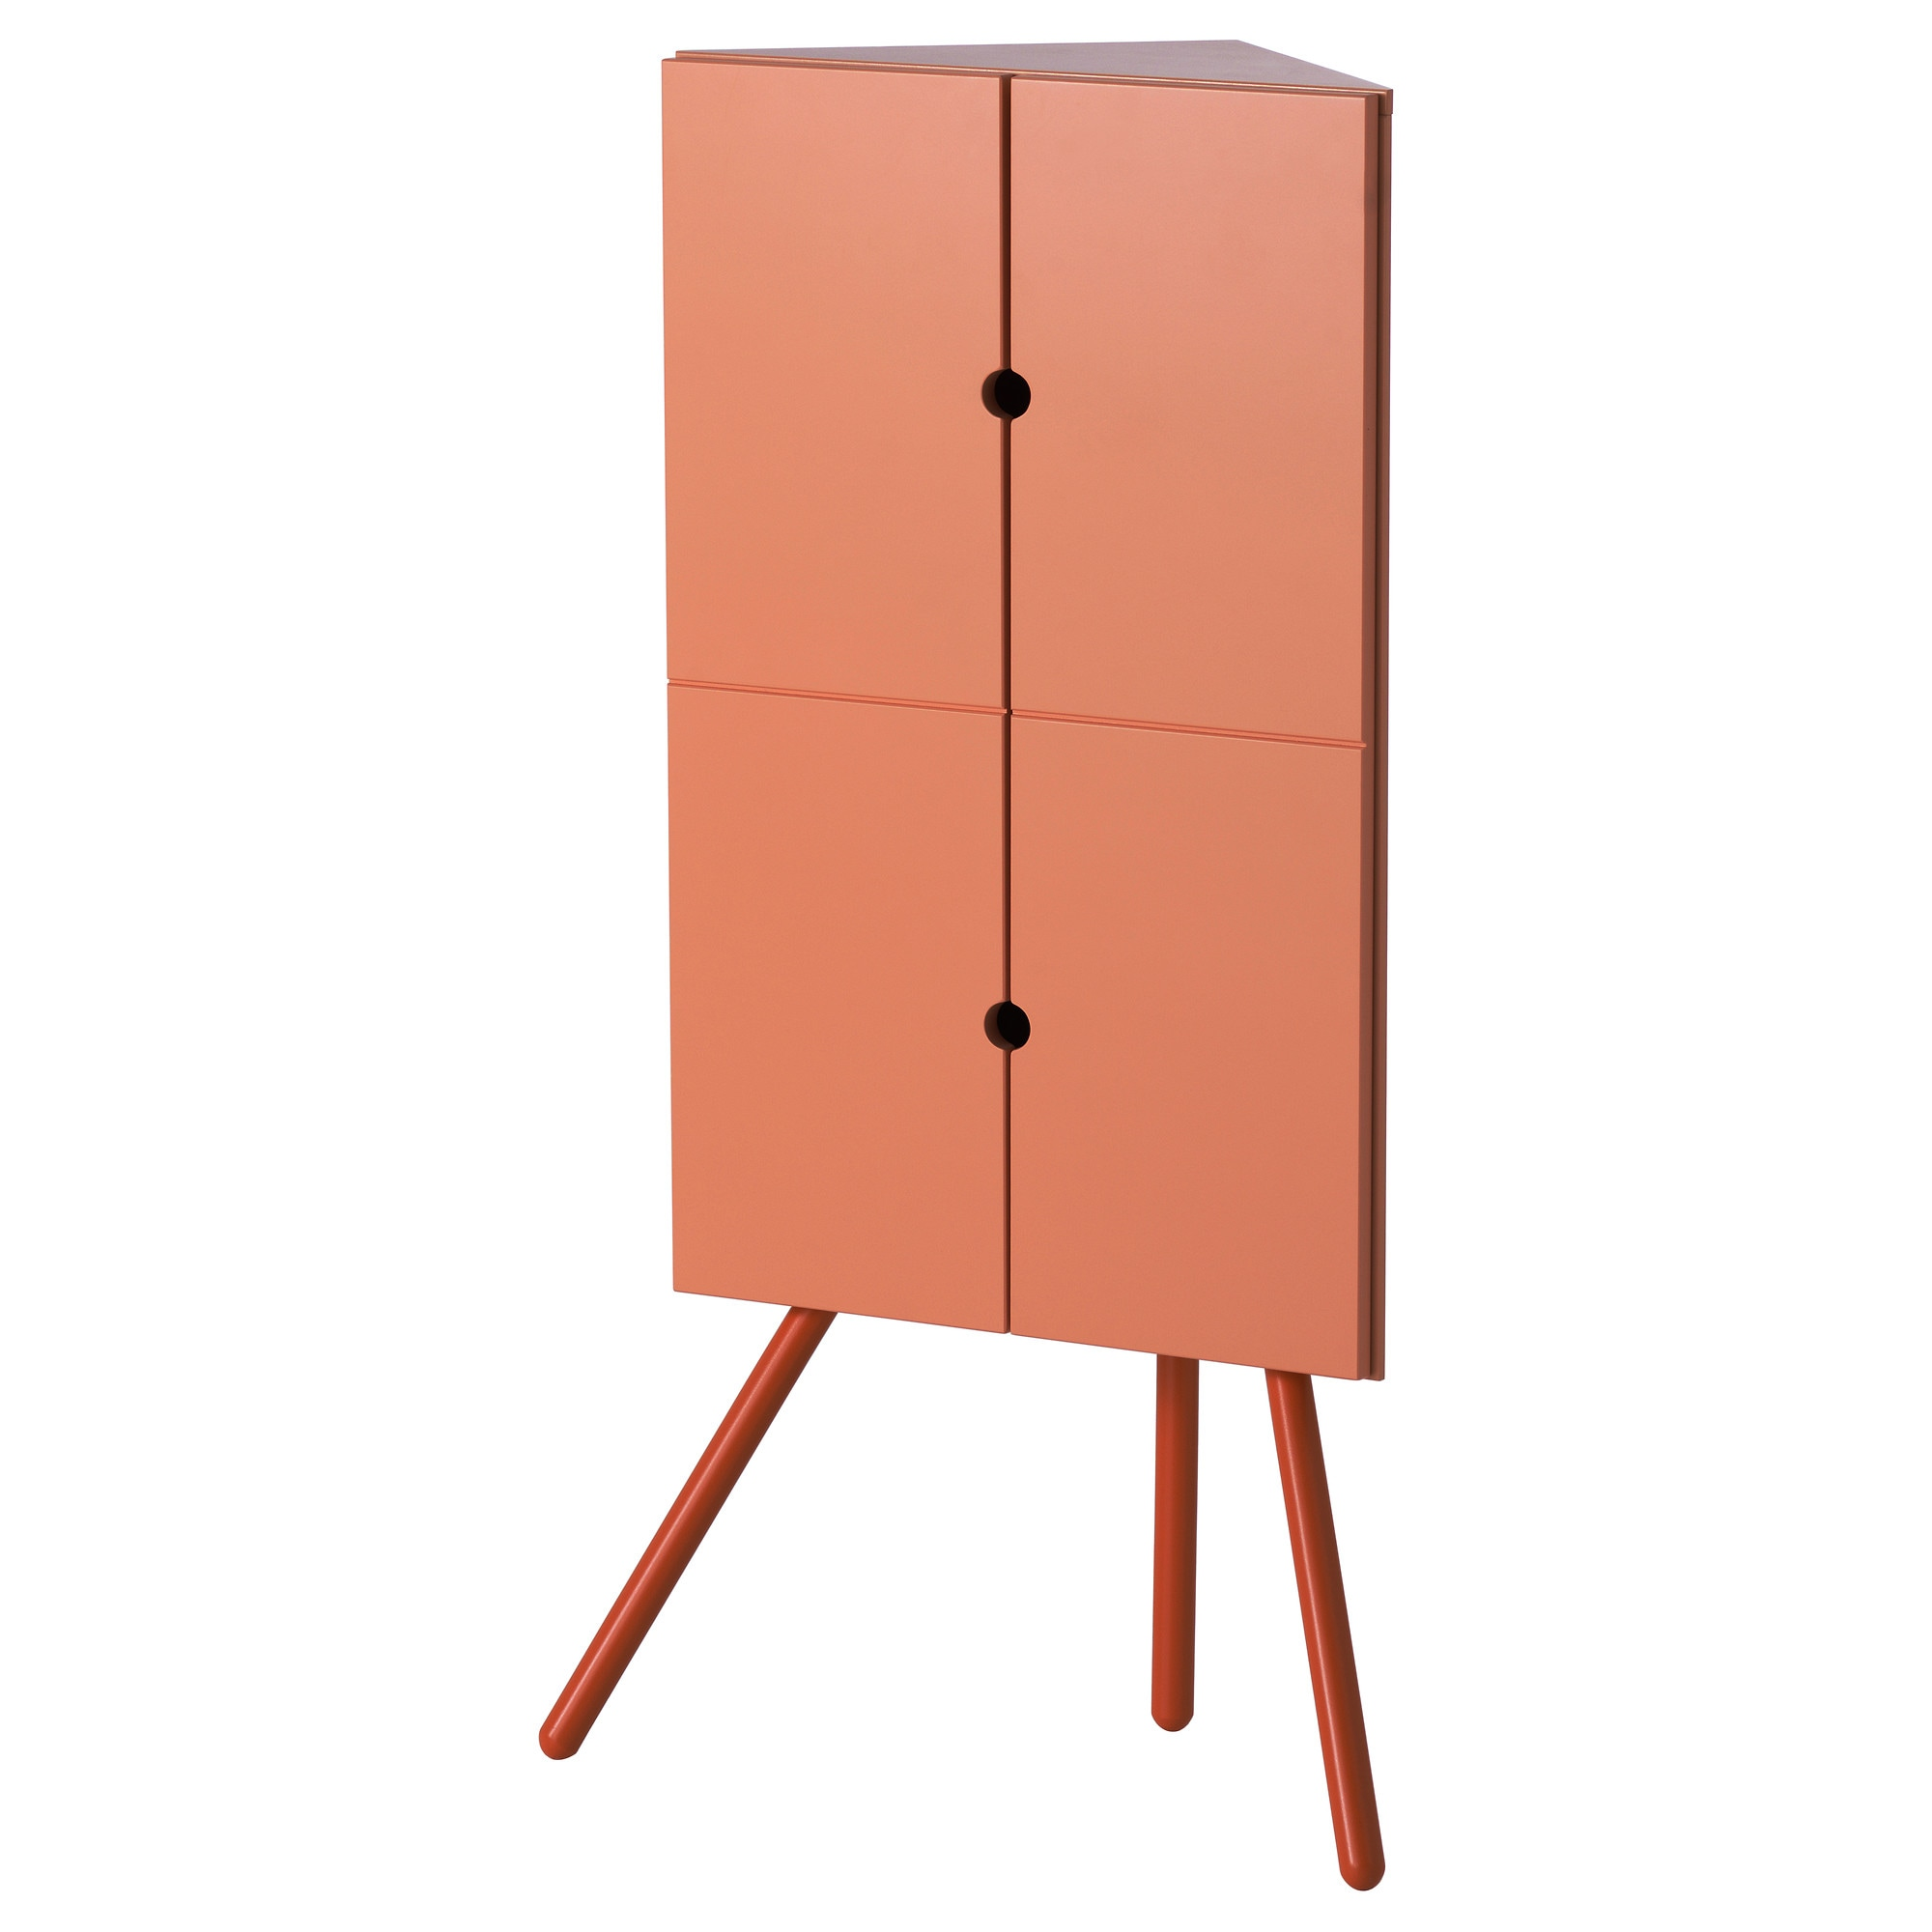 #A73B24 Tall Corner Cabinet Ikea Ikea Ps 2014 Corner Cabinet with 2000x2000 px of Best Tall Storage Cabinet Ikea 20002000 image @ avoidforclosure.info